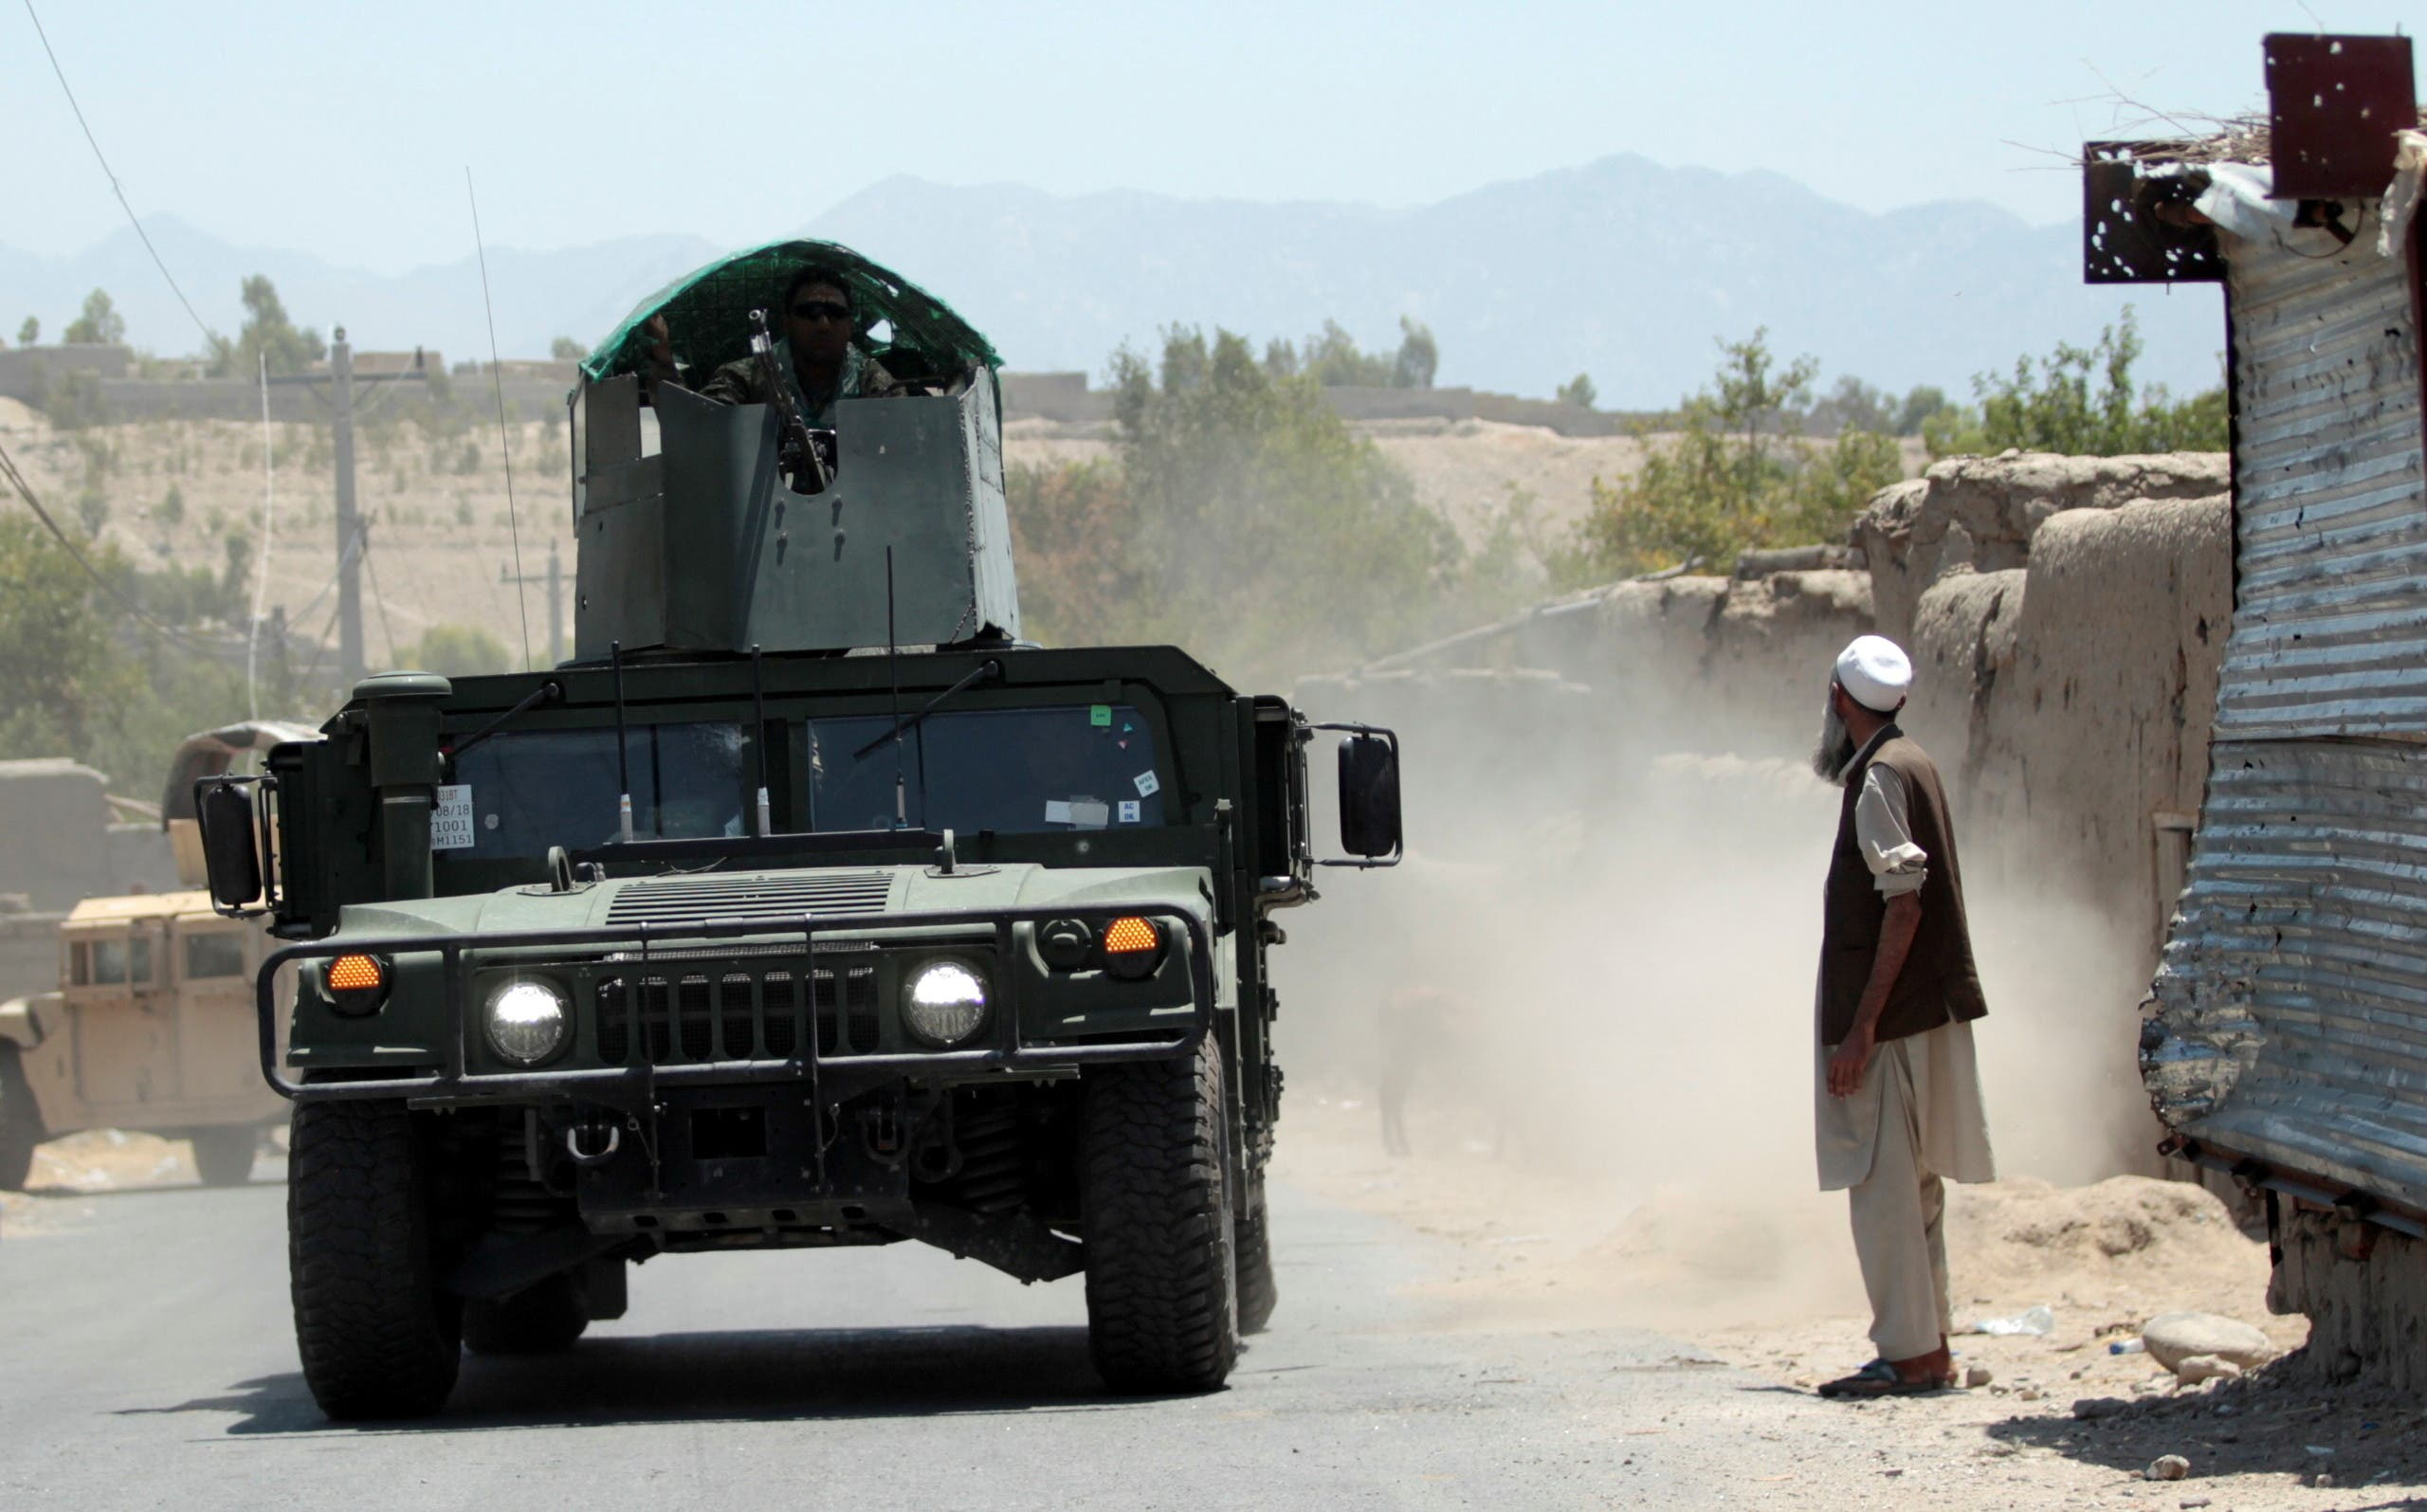 Afghan National Army (ANA) soldiers patrol the area near a checkpoint recaptured from the Taliban, in the Alishing district of Laghman province, Afghanistan July 8, 2021. (Reuters)